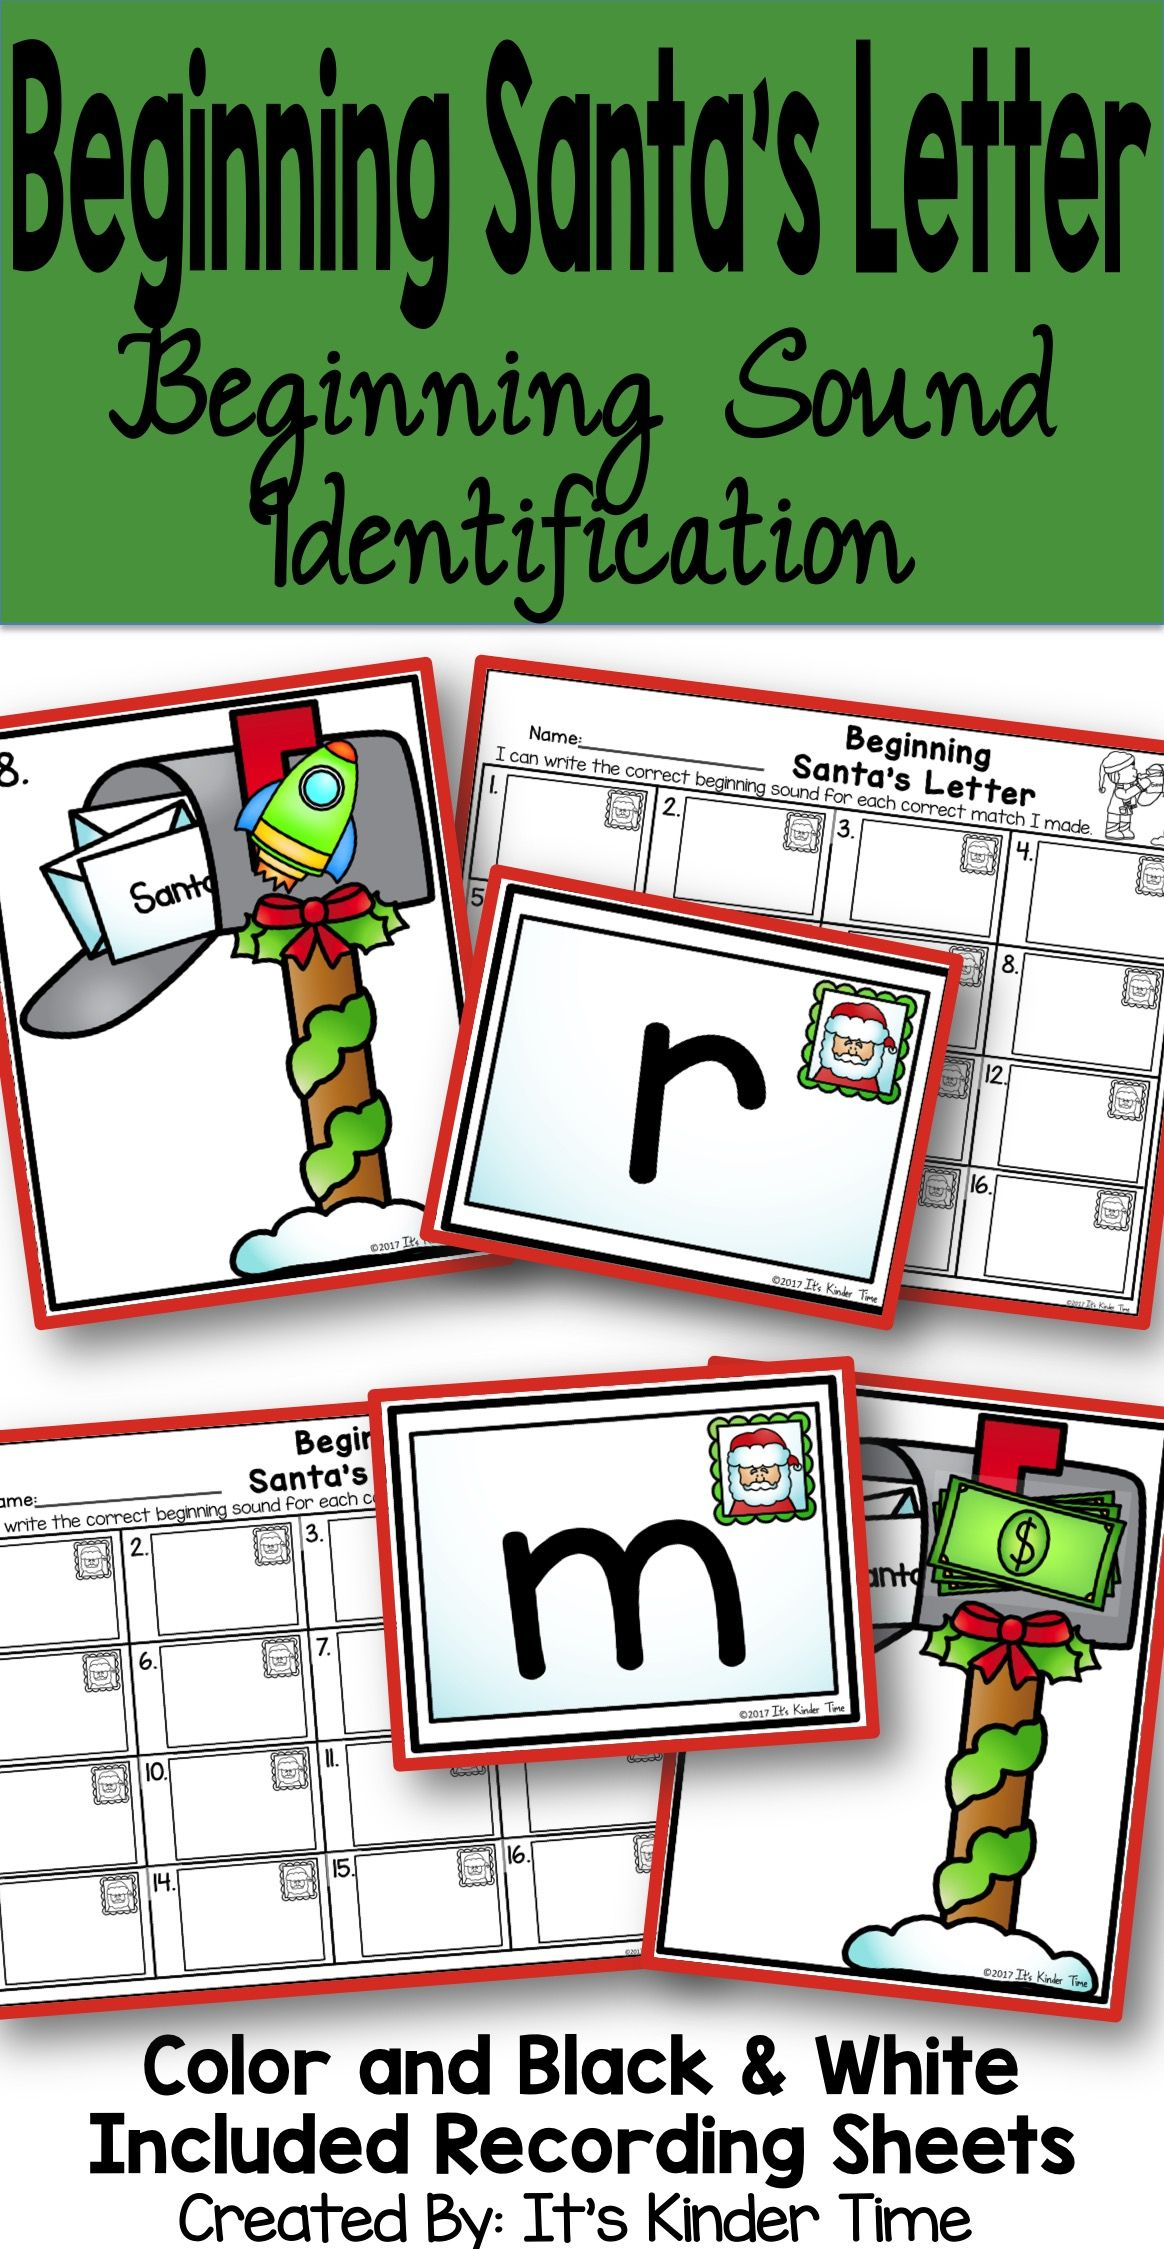 Beginning Santa\'s Letter - Beginning Sound Identification ...